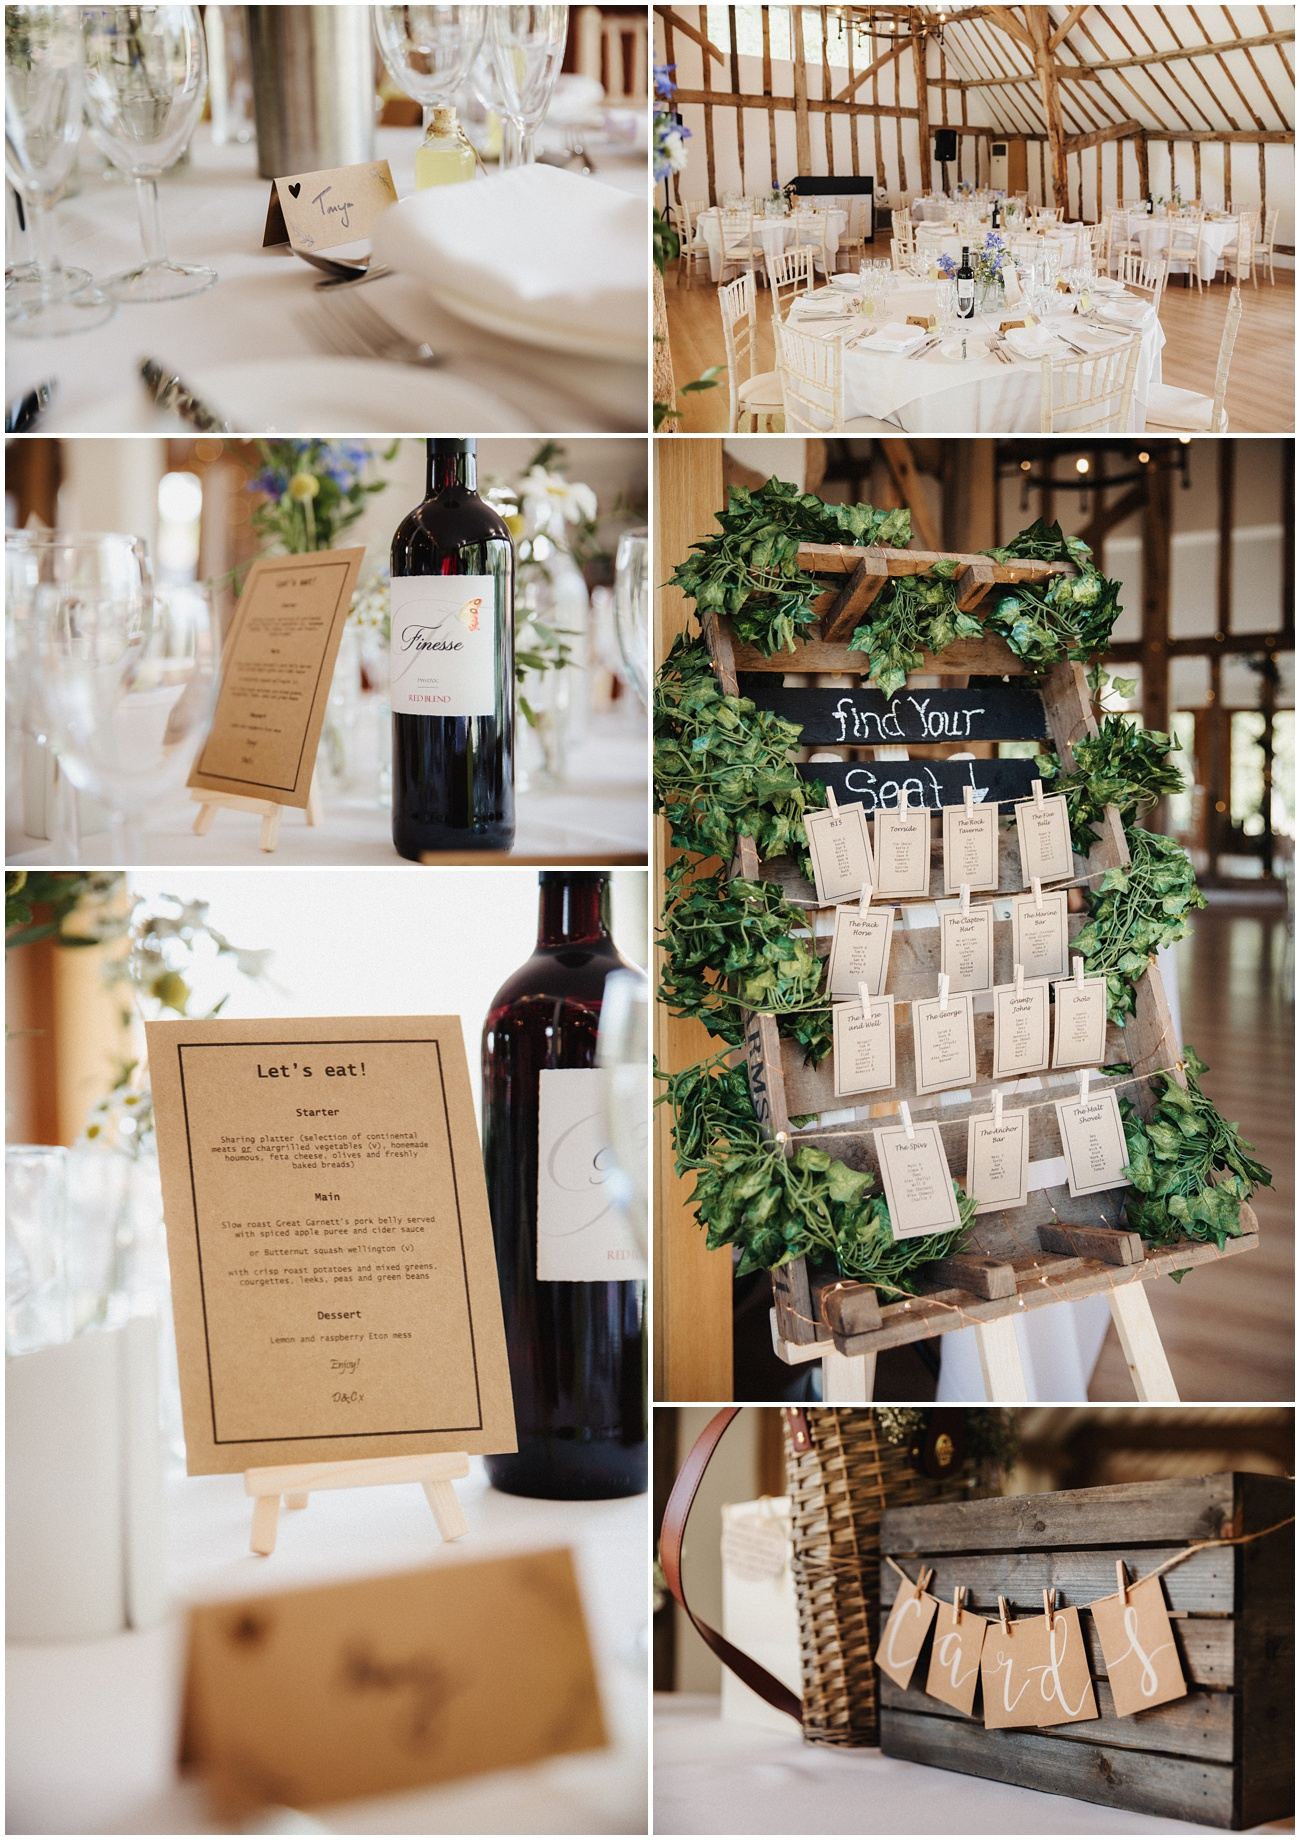 The wedding breakfast room details